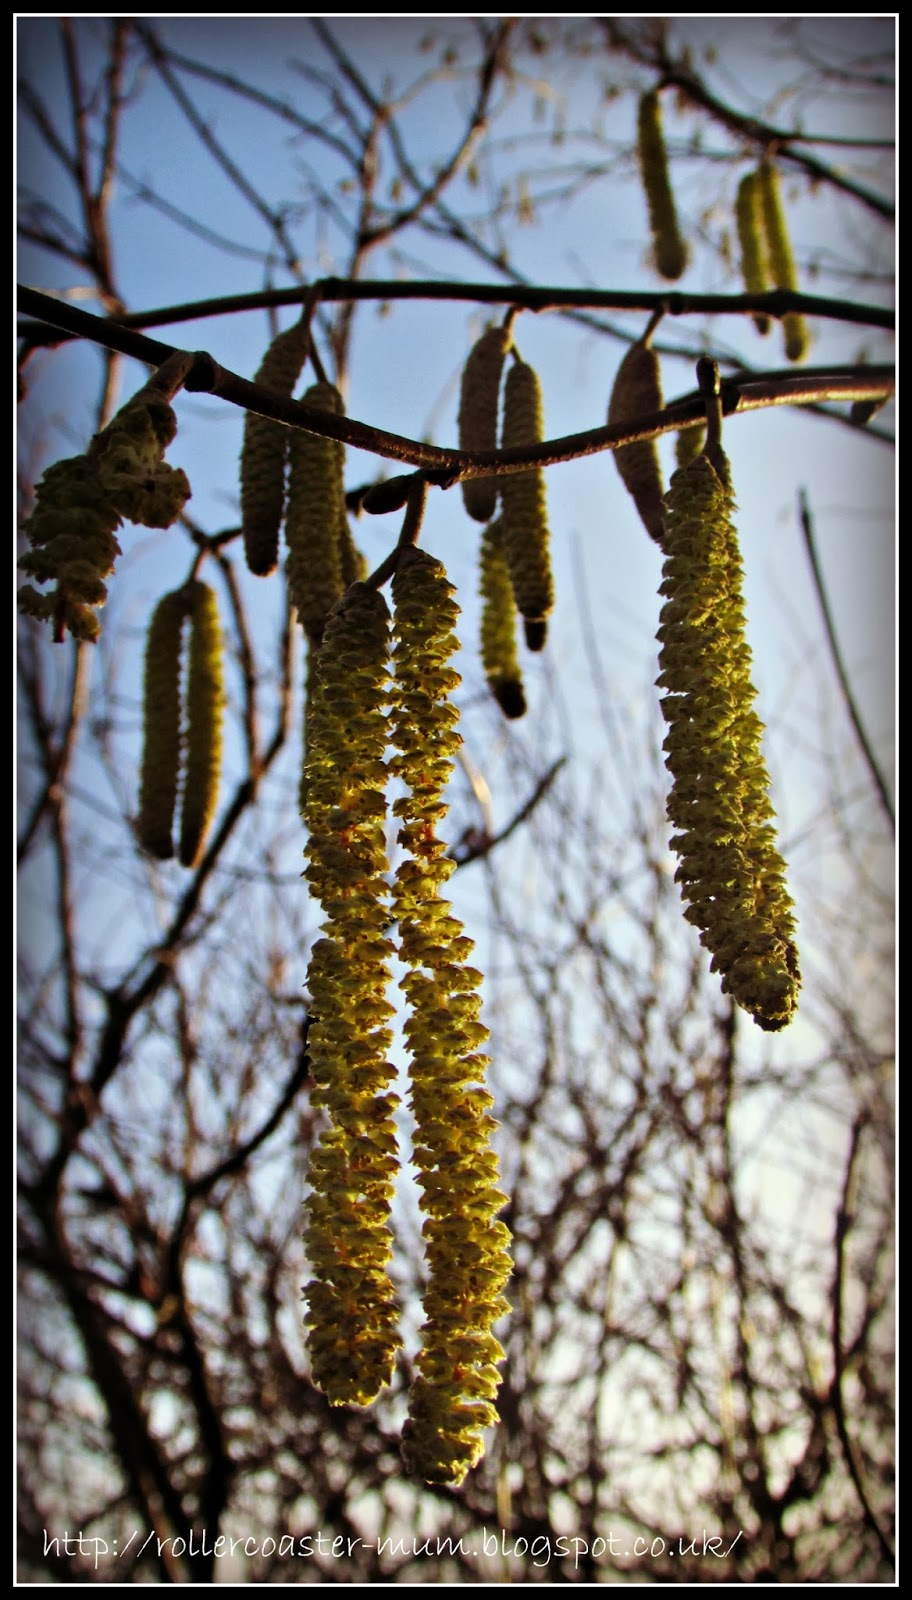 Signs of Spring - Catkins